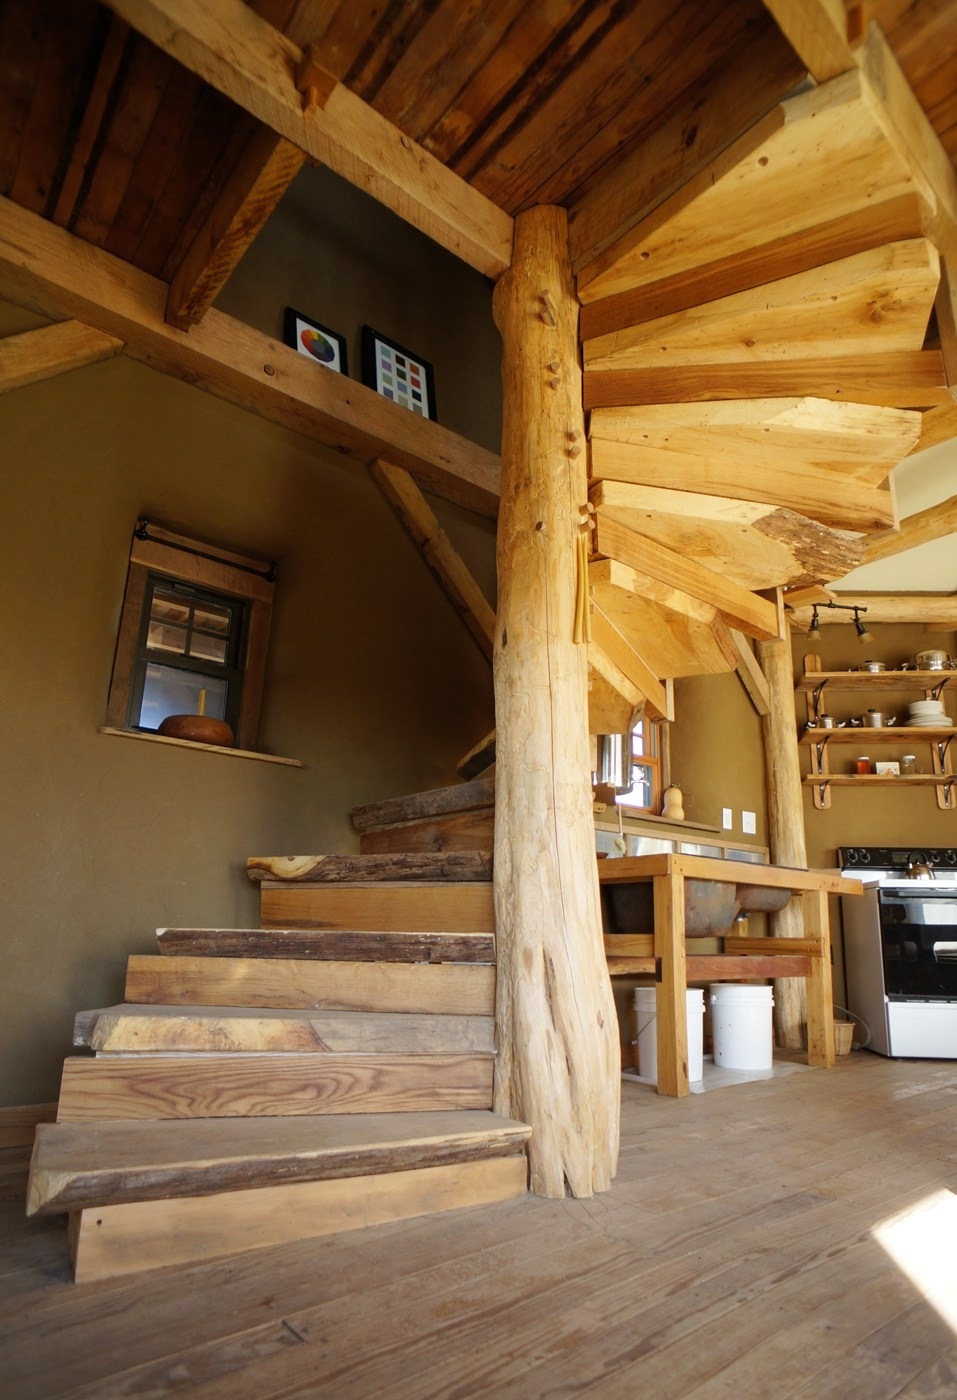 Diy Wooden Spiral Staircase Design How We Built It The Year Of Mud | Building A Spiral Staircase | Spiral Stairs | Handrail | Old Fashioned | Wood | Double Spiral